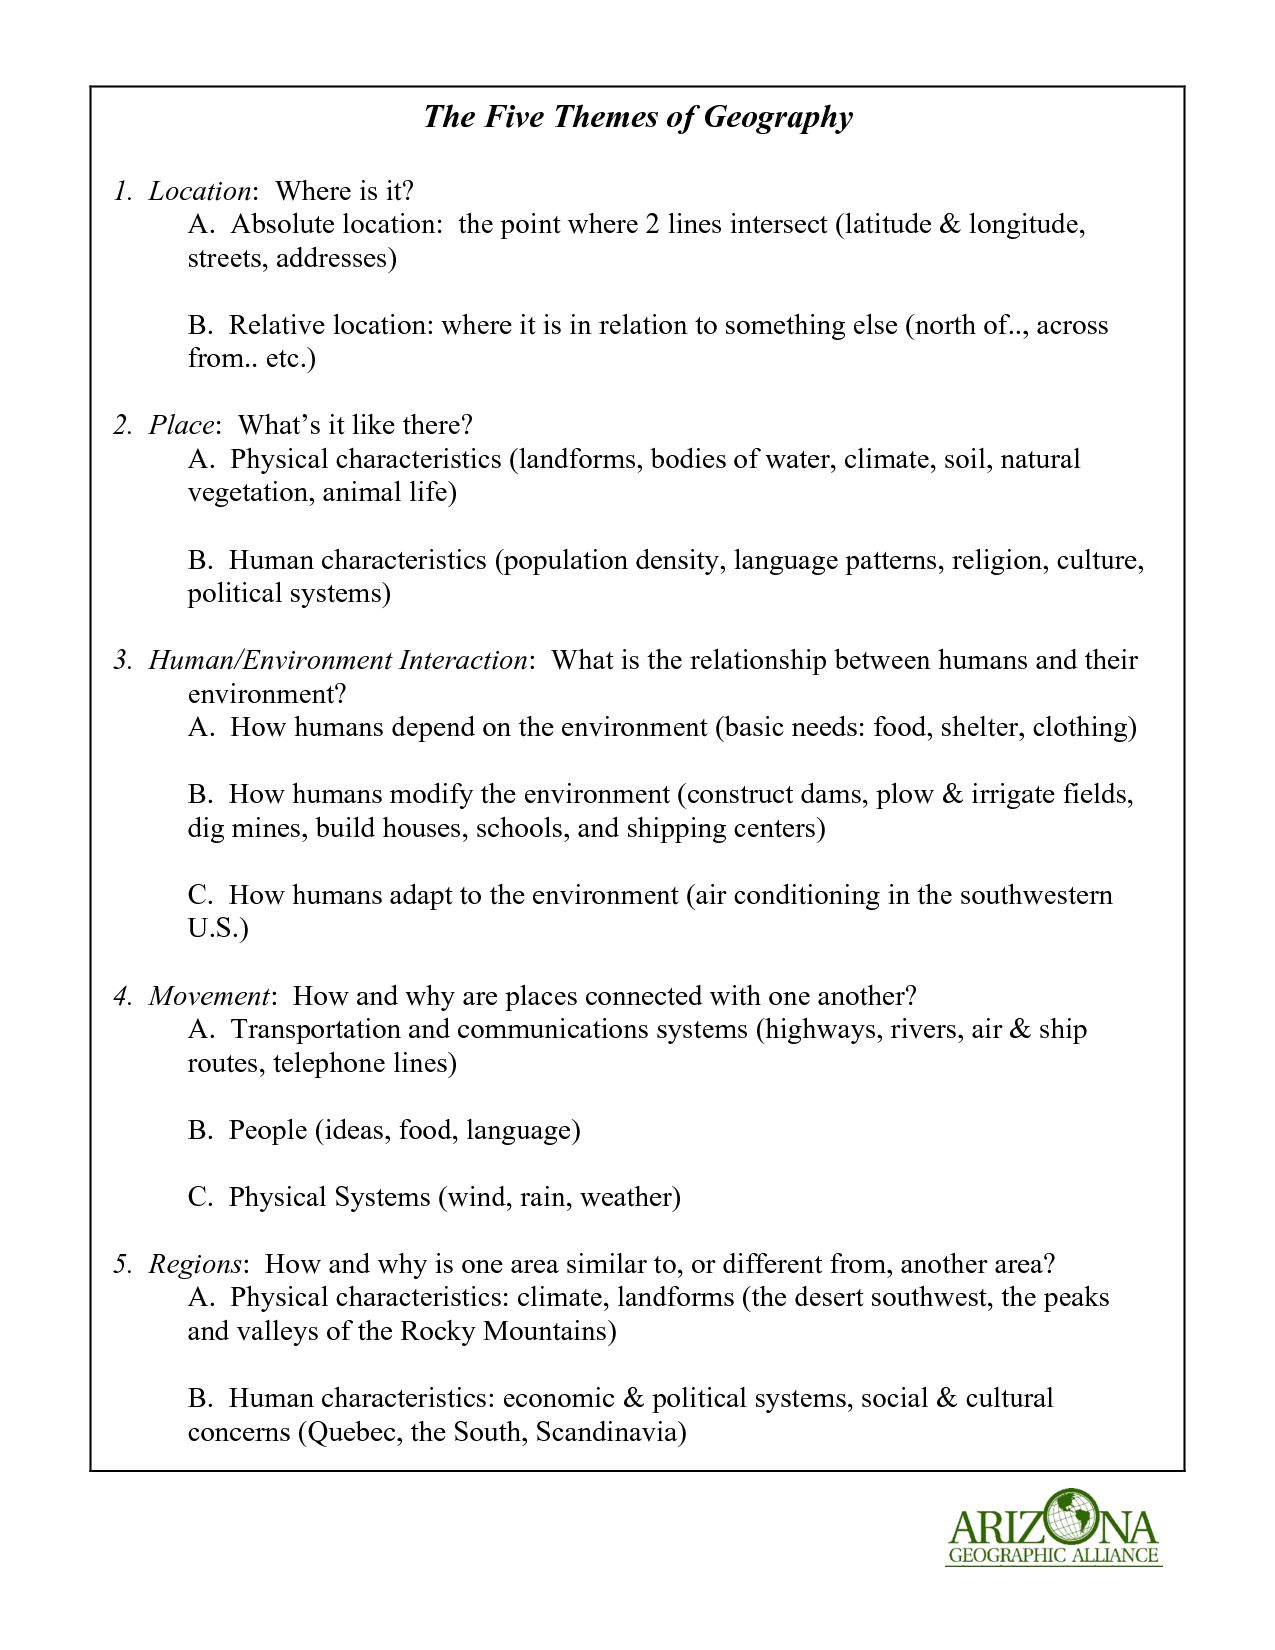 small resolution of 5 Themes of Geography Printable   18 Best Images of Five Themes Of  Geography Worksheets…   Geography worksheets